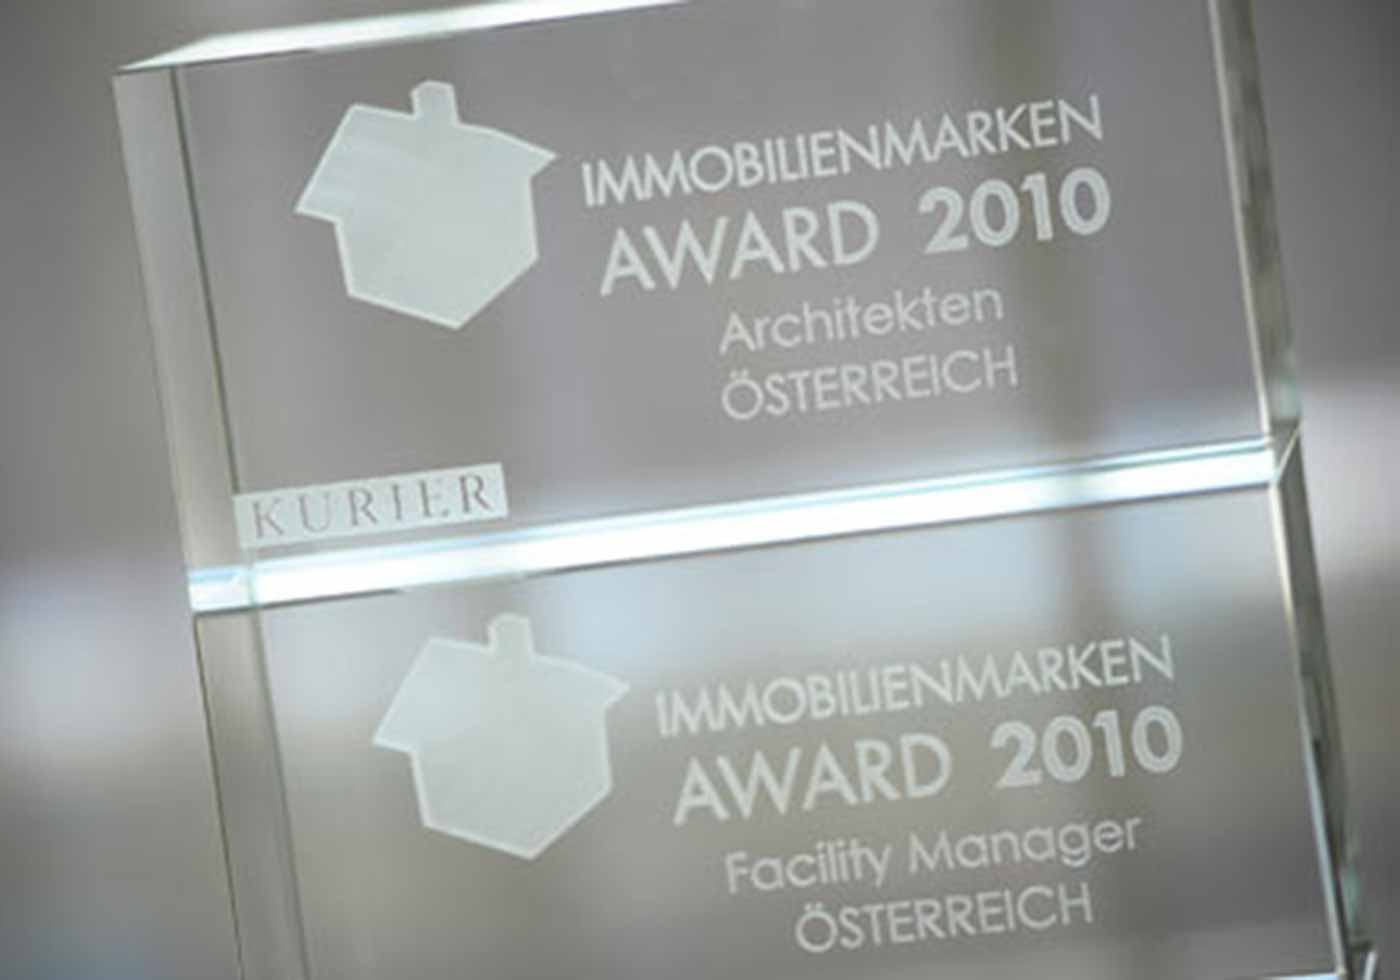 Immobilienmarken-Award 2010, AT